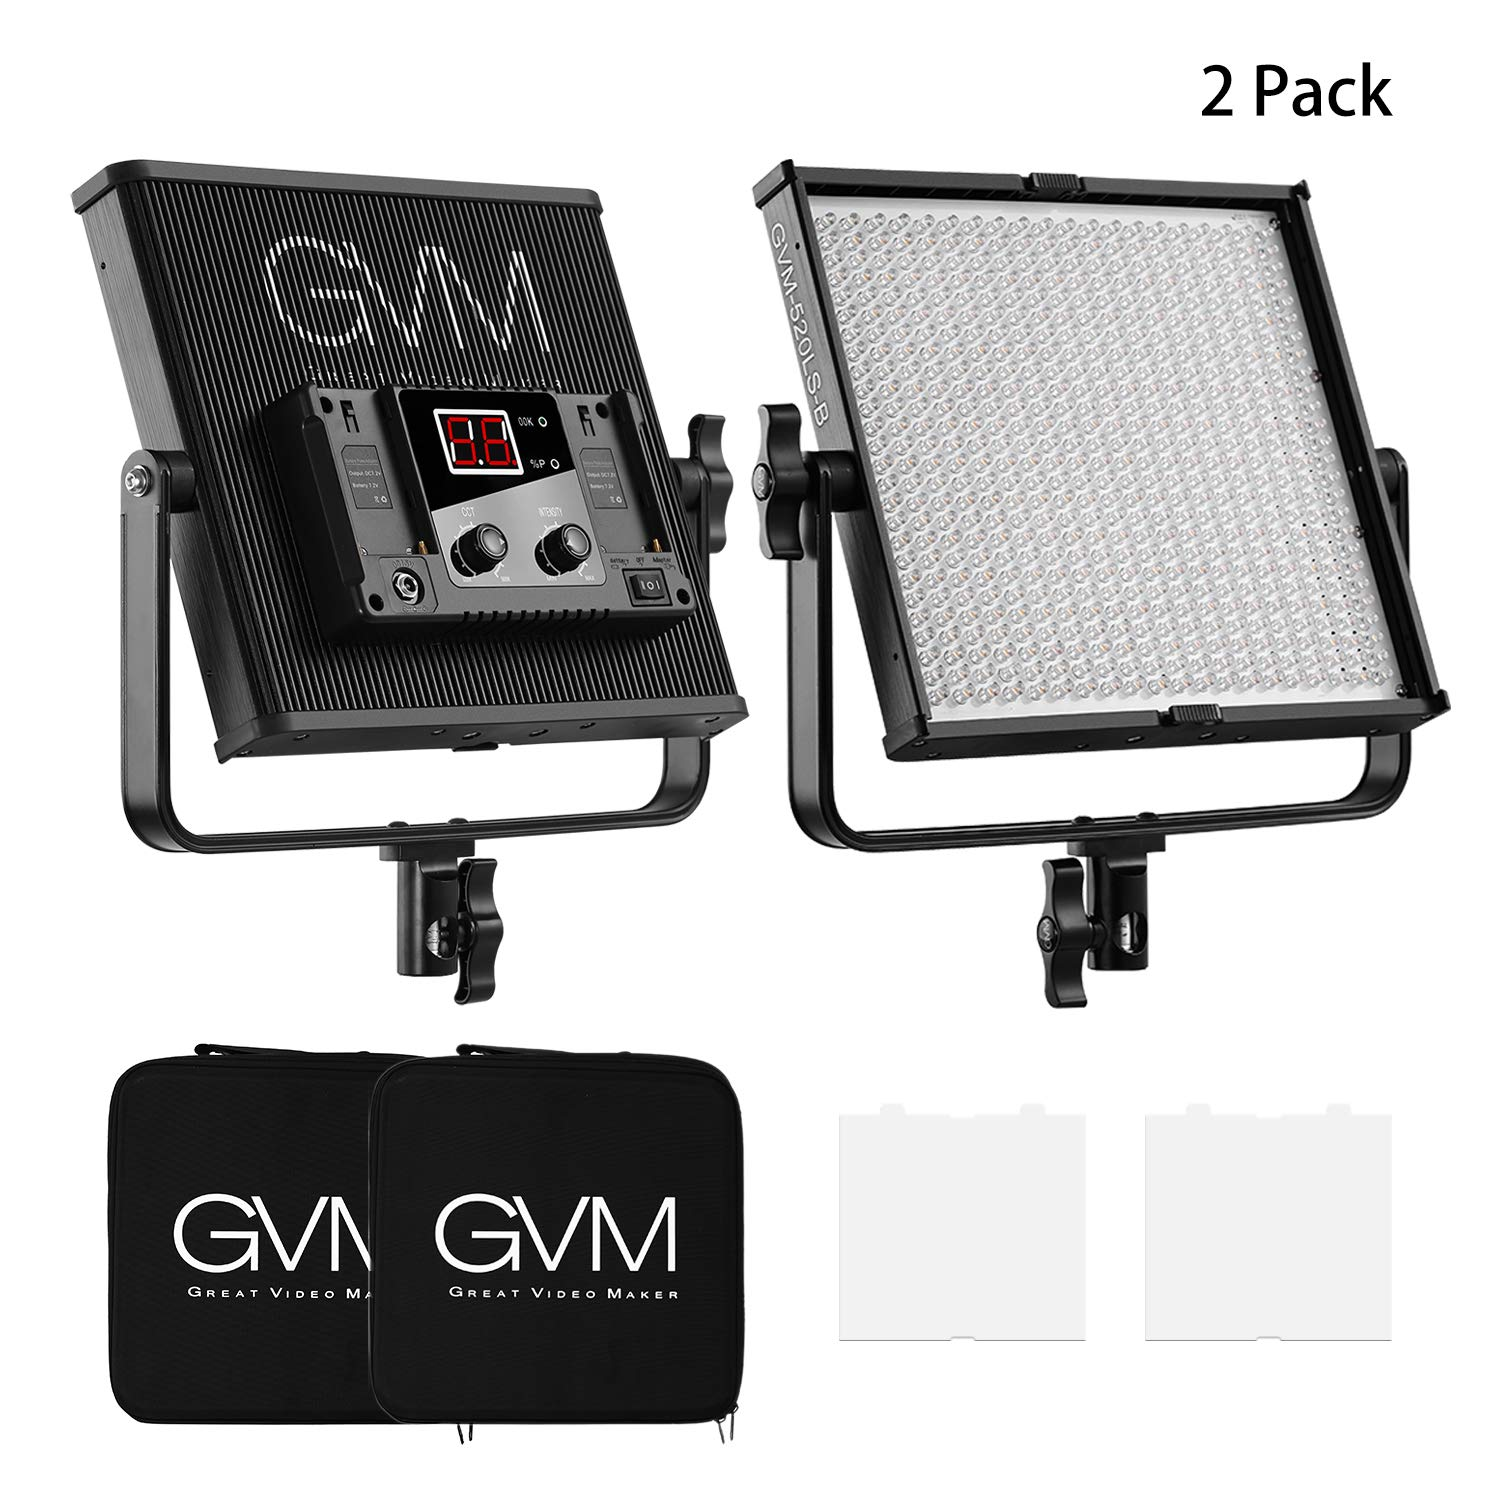 LED Video Lighting Kit, GVM 2 Pack 520LS Video Light Featured with CRI 97+, 520 Beads Adjustable Bi-Color 3200-5600K, LCD Screen, Thick Aluminum Alloy Case, Adjustable 360-Degree and U-Shaped Frame by GVM Great Video Maker